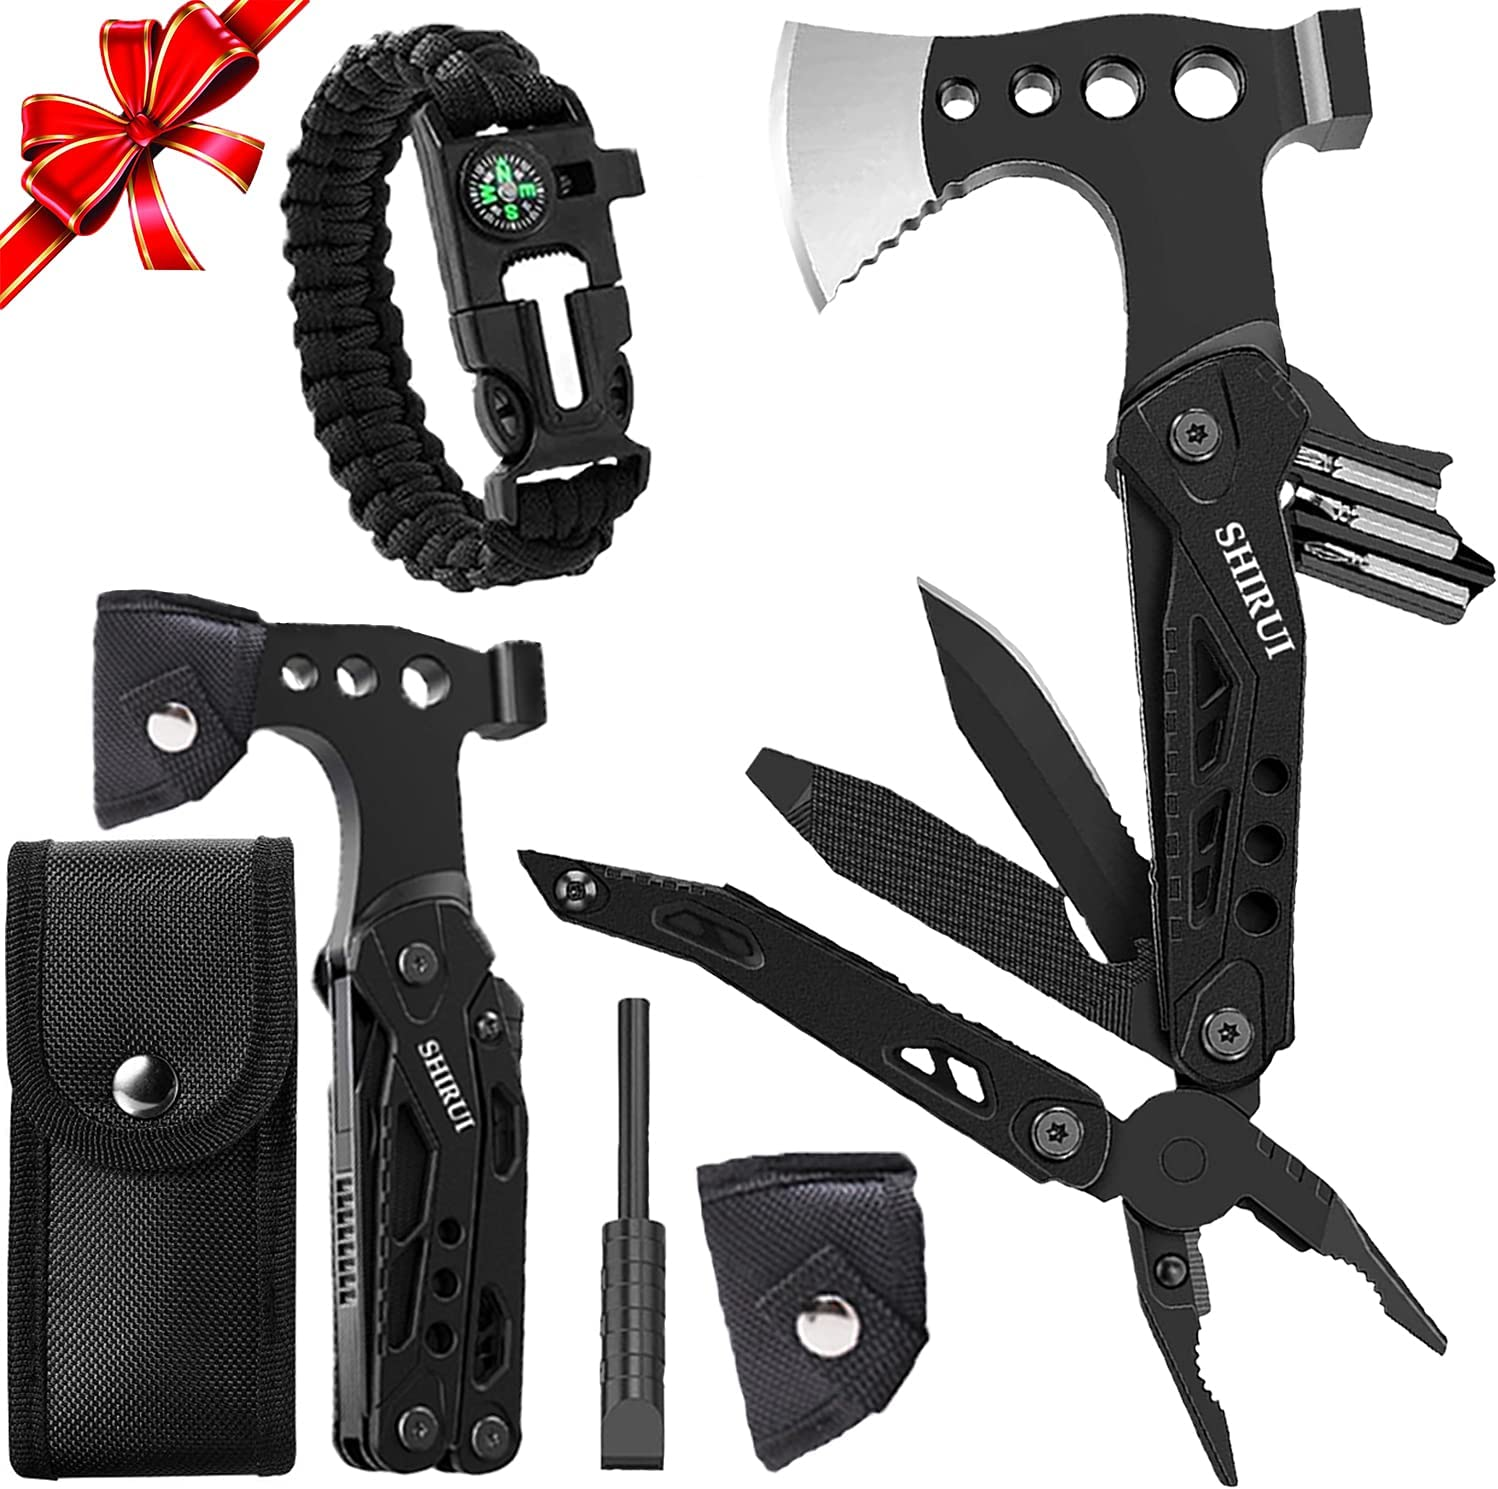 ShiRui Multitool Hammer, Gifts for Men Dad Camping Multitool Accessories 15 in 1 Pocket Hammer Survival Tools with Hammer Axe Sheath for Hunting Hiking Gifts for Men Multitool Hatchet